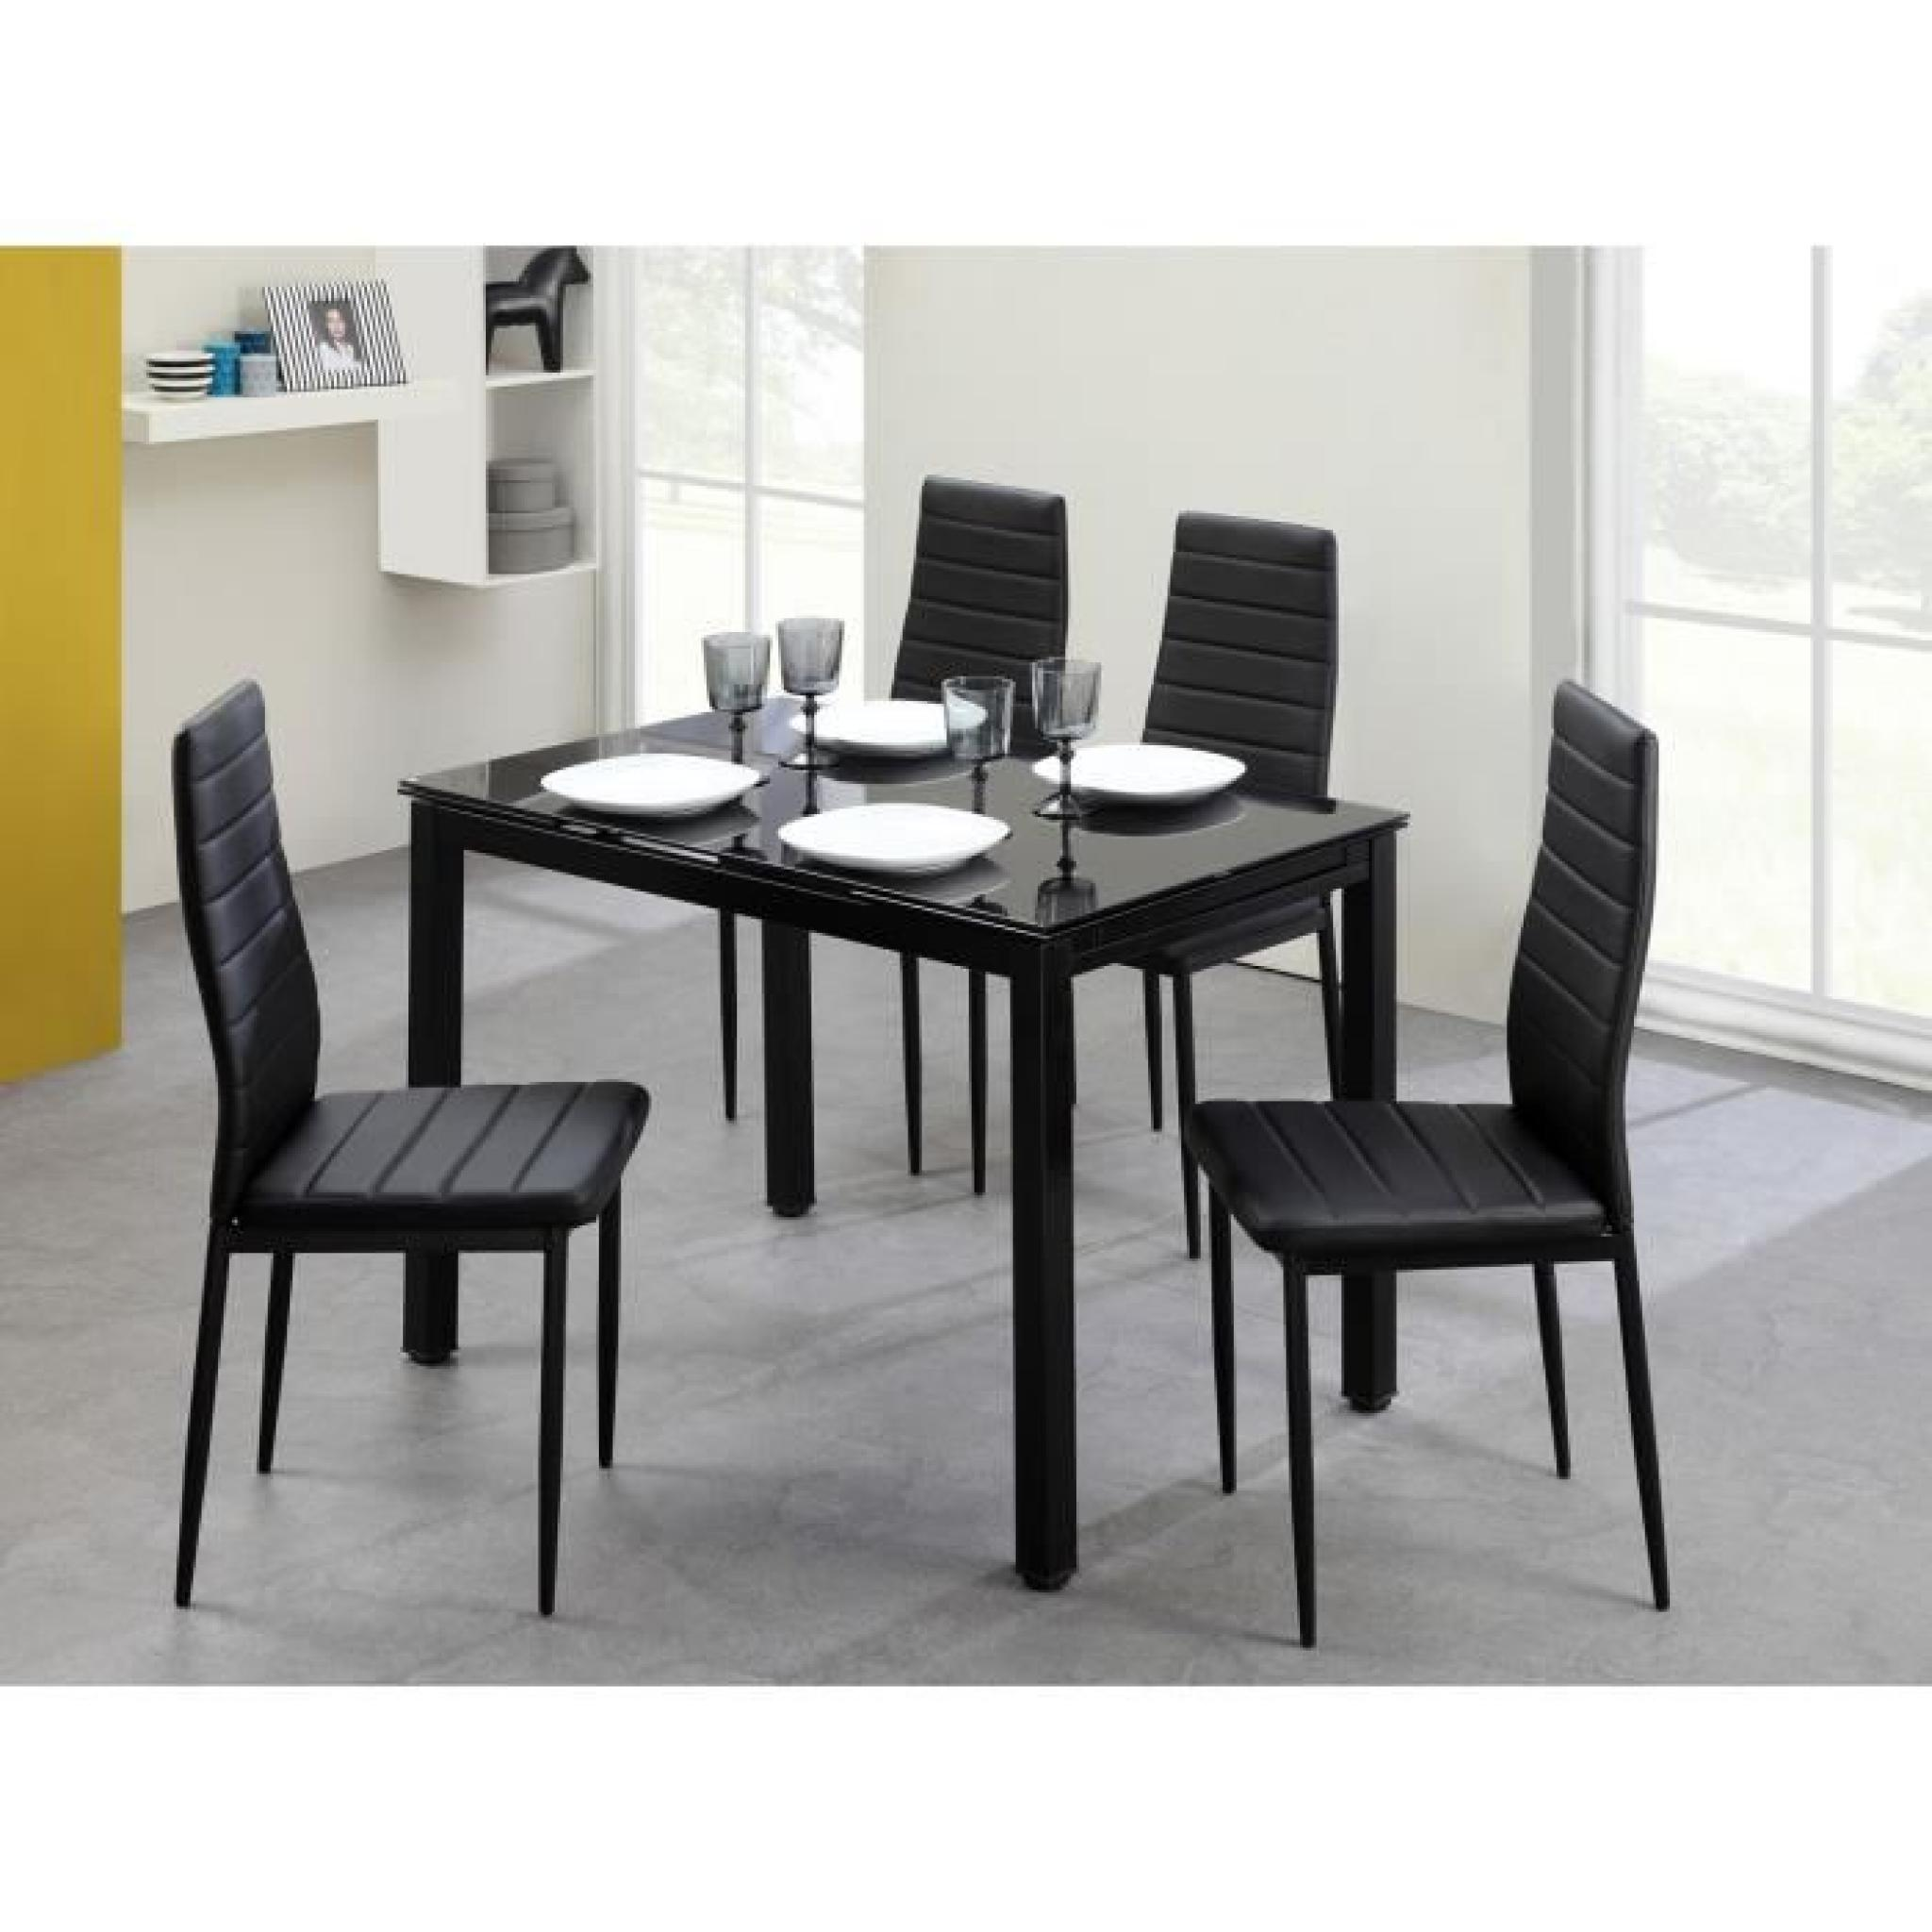 Aleph ensemble table manger 6 chaises en simili noir for Ensemble table 6 chaises pas cher